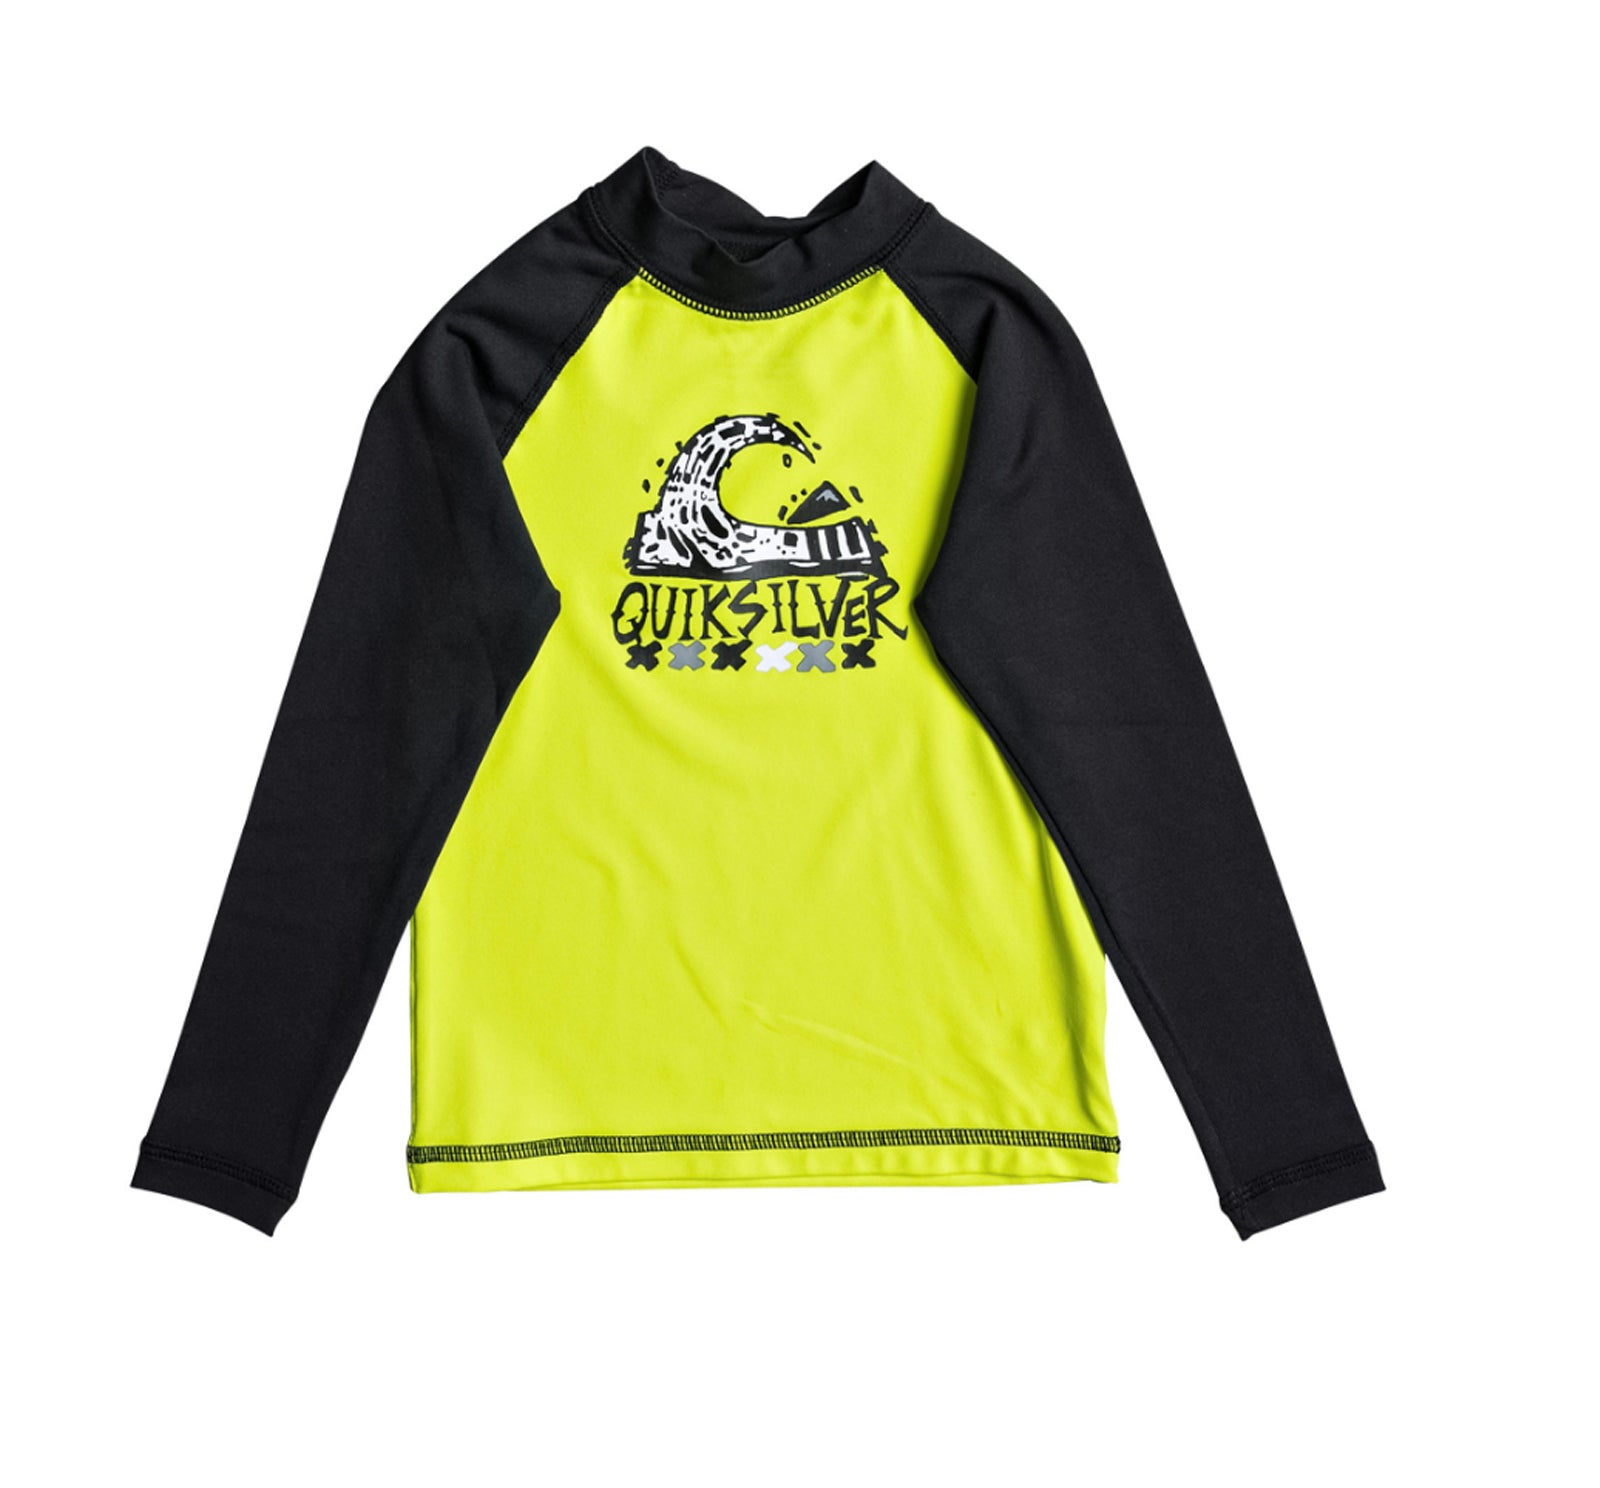 Quiksilver Bubble Dream Youth Boy's L/S Rashguard